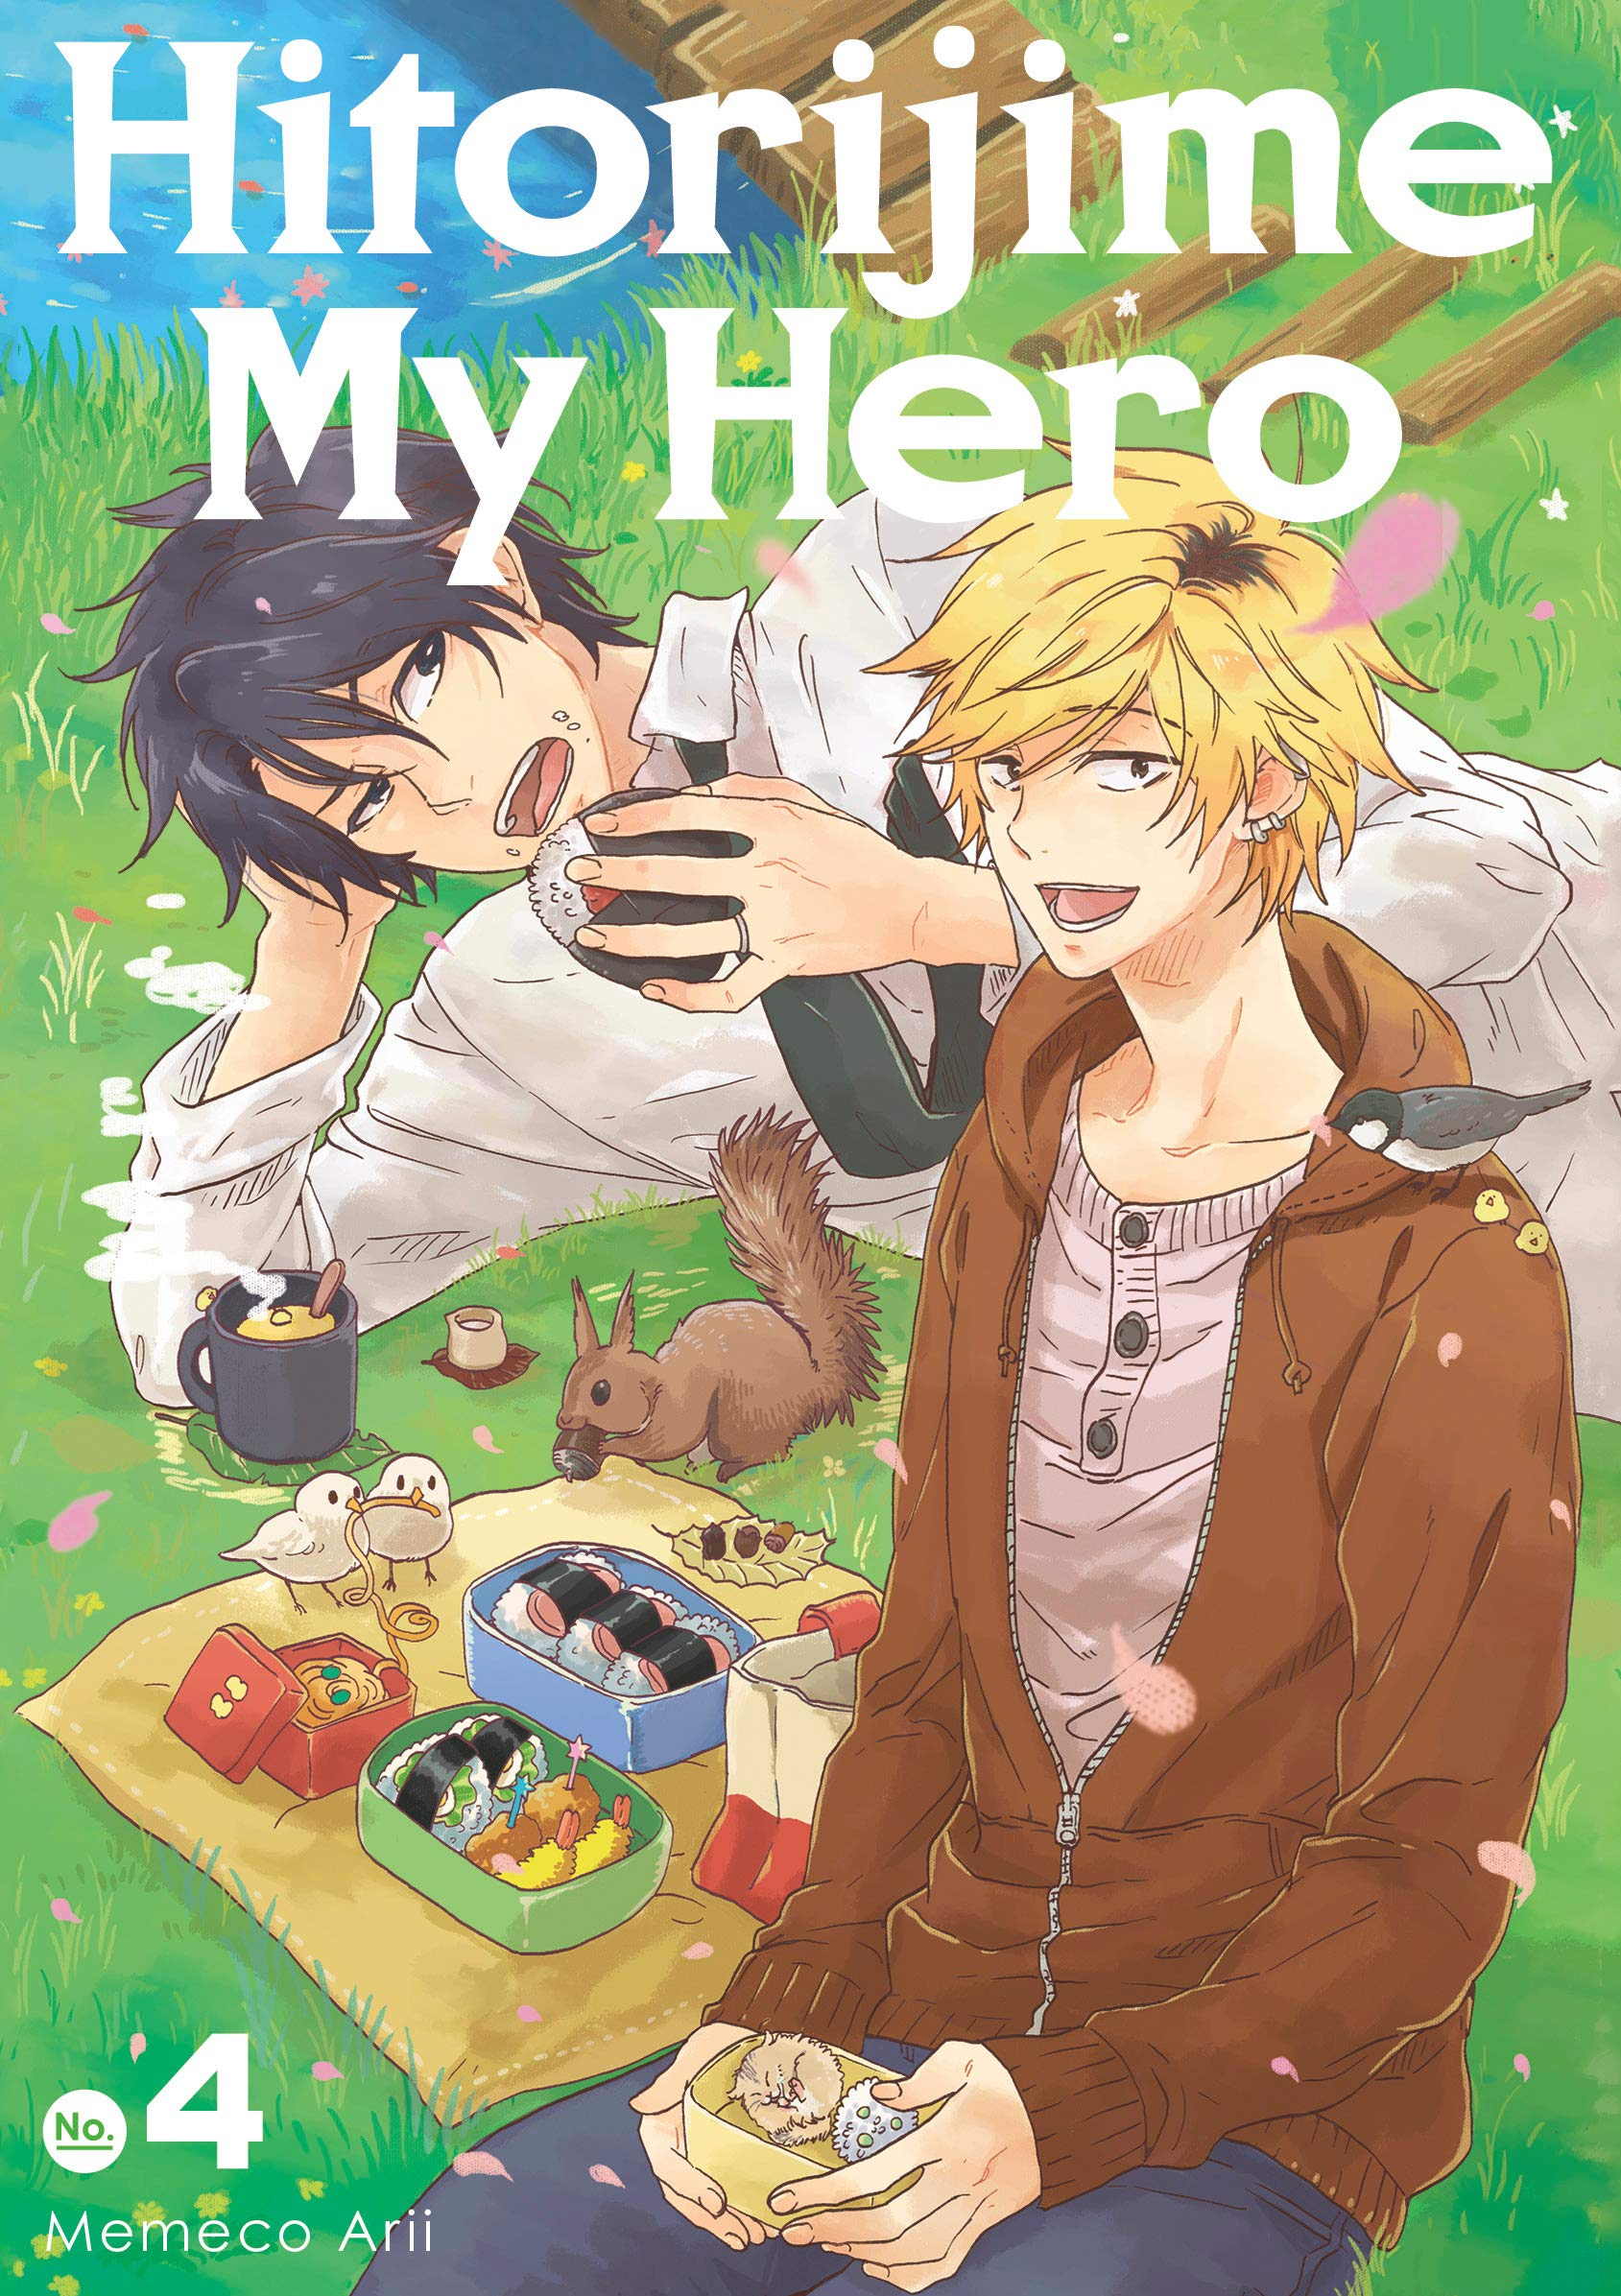 Hitorijime My Hero Volume Four Hitorijime My Hero Wiki Fandom